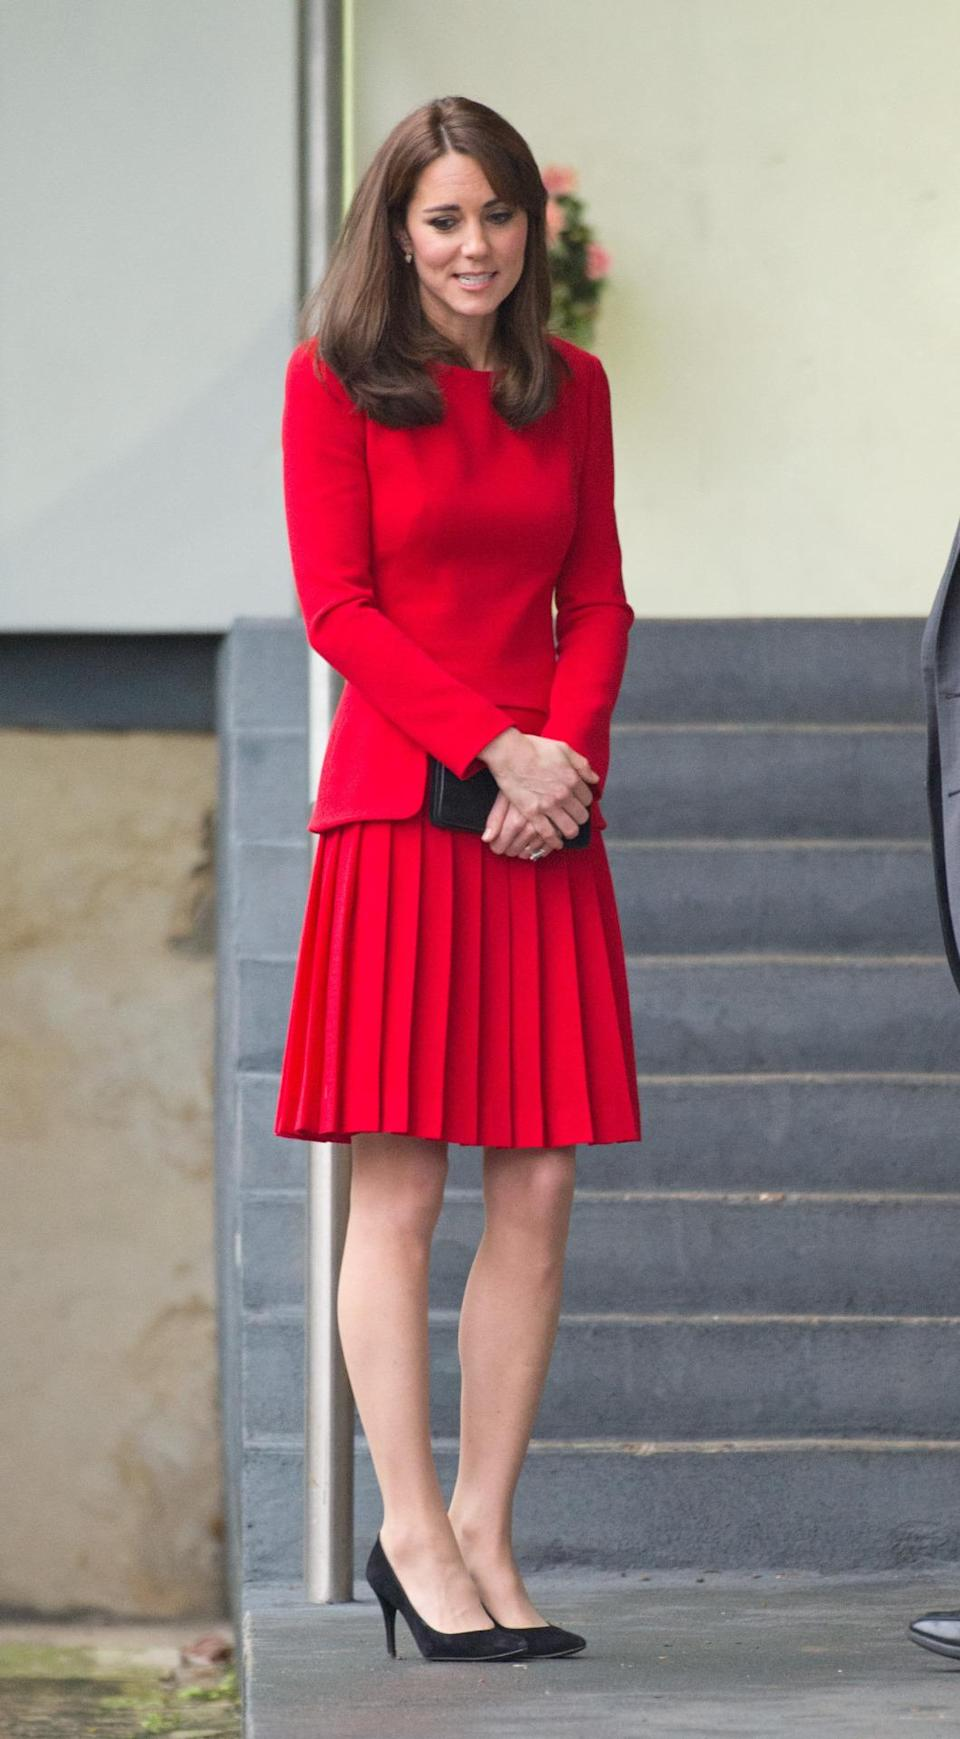 <p>Out for a Christmas lunch, Kate dressed in a vibrant red buttoned Luisa Spagnoli jacket and coordinating skirt with black Stuart Weitzman pumps. </p><p><i>[Photo: PA]</i></p>